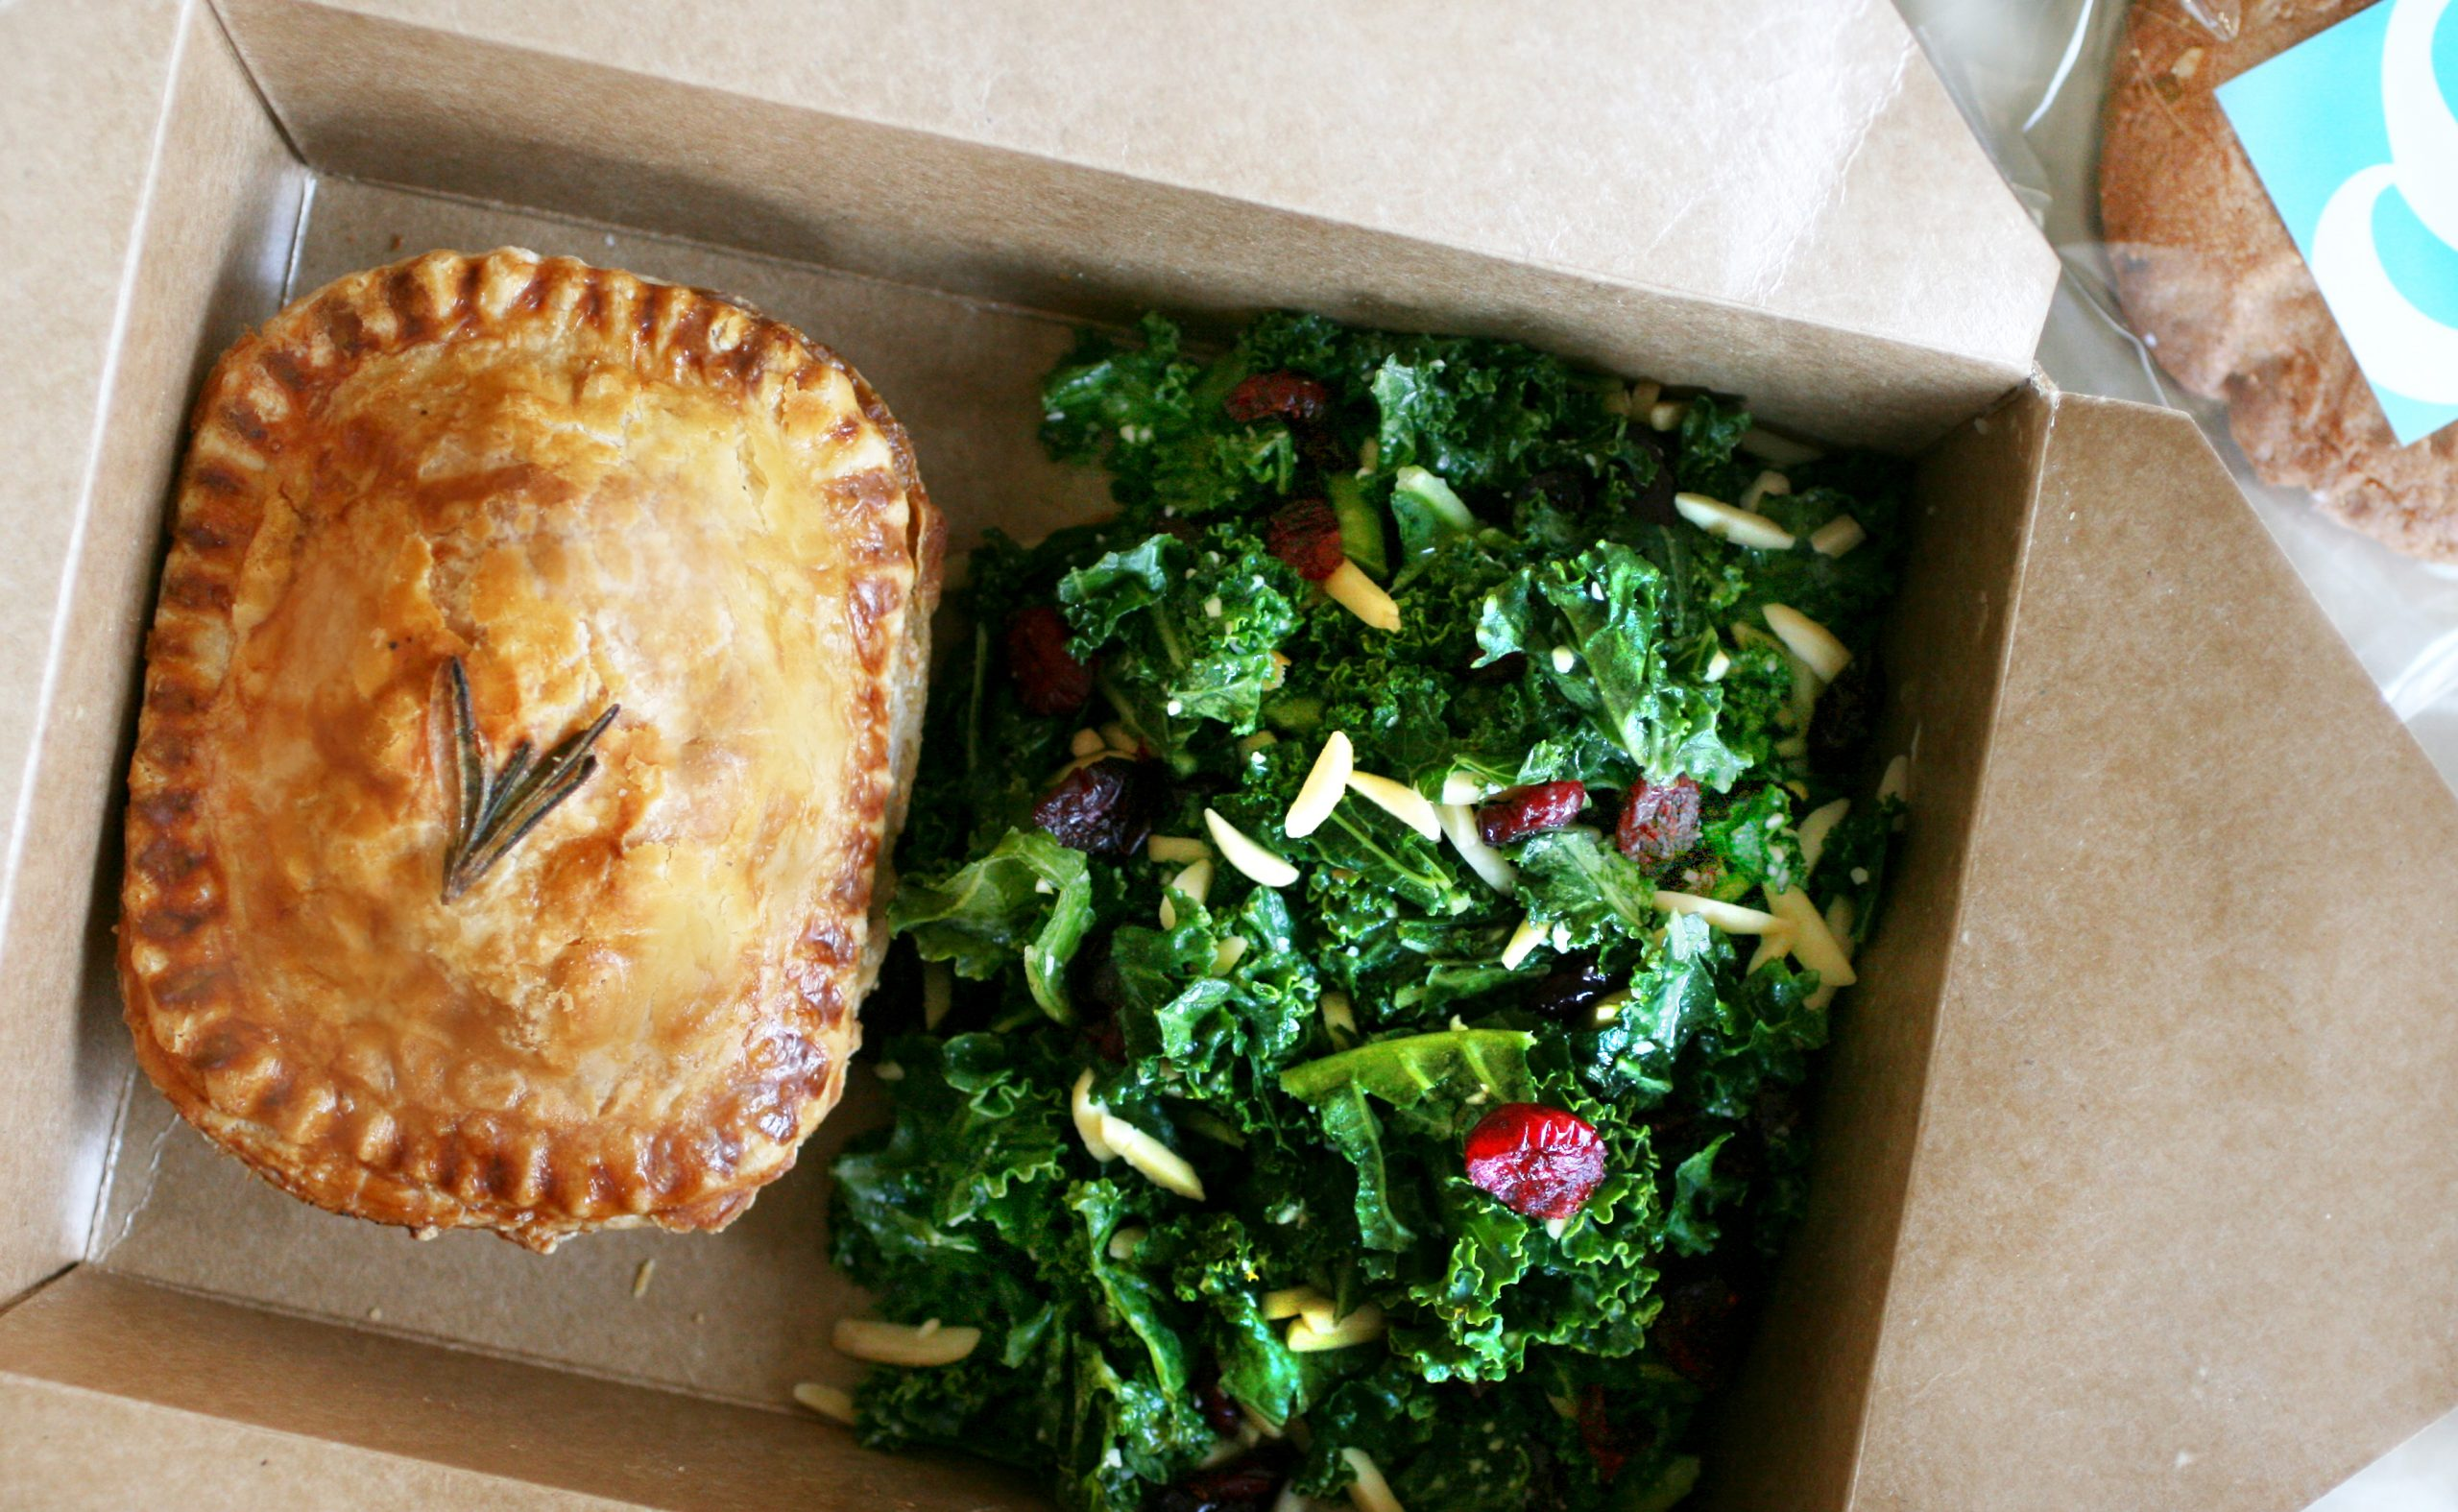 Photo of Panbury's pie and salad lunchbox